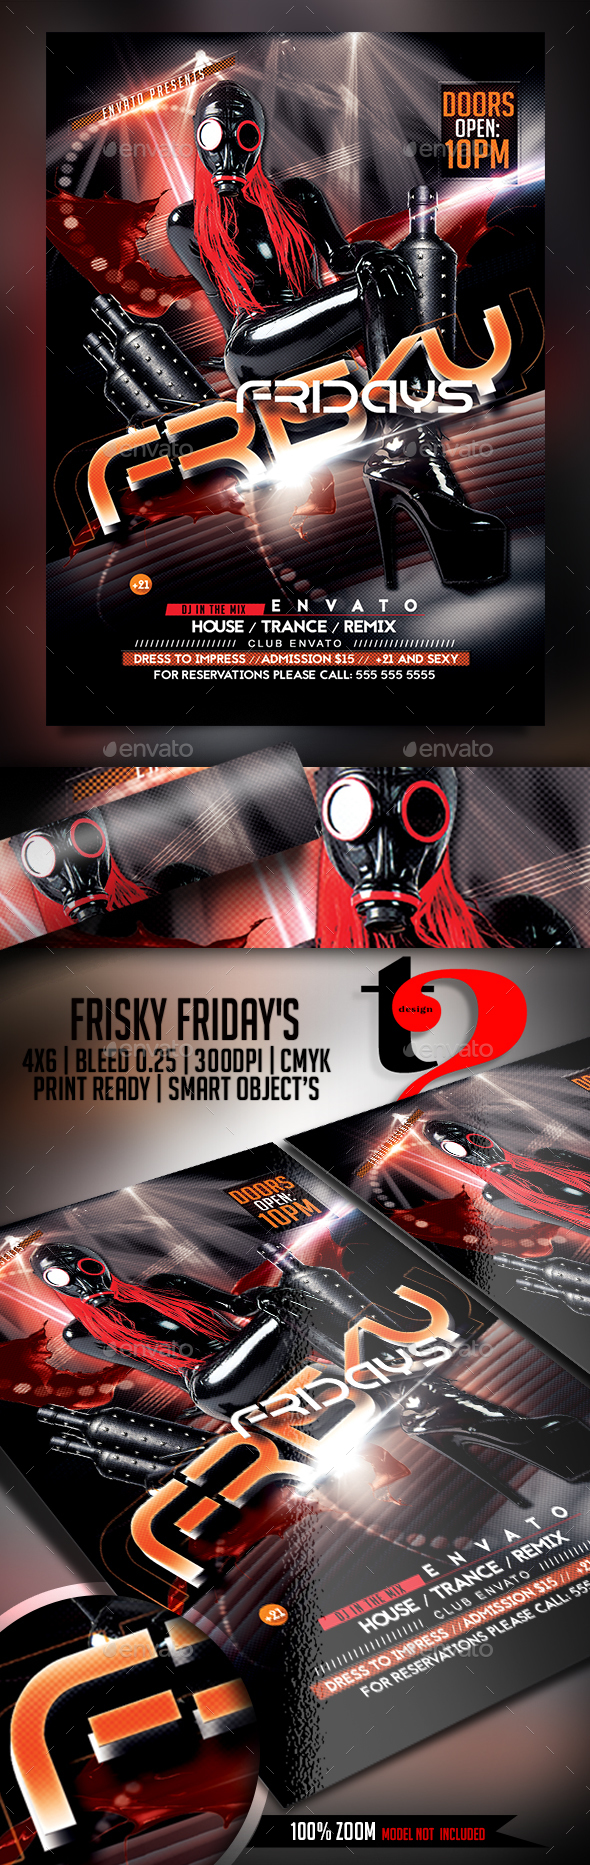 Frisky Fridays Flyer Template - Clubs & Parties Events